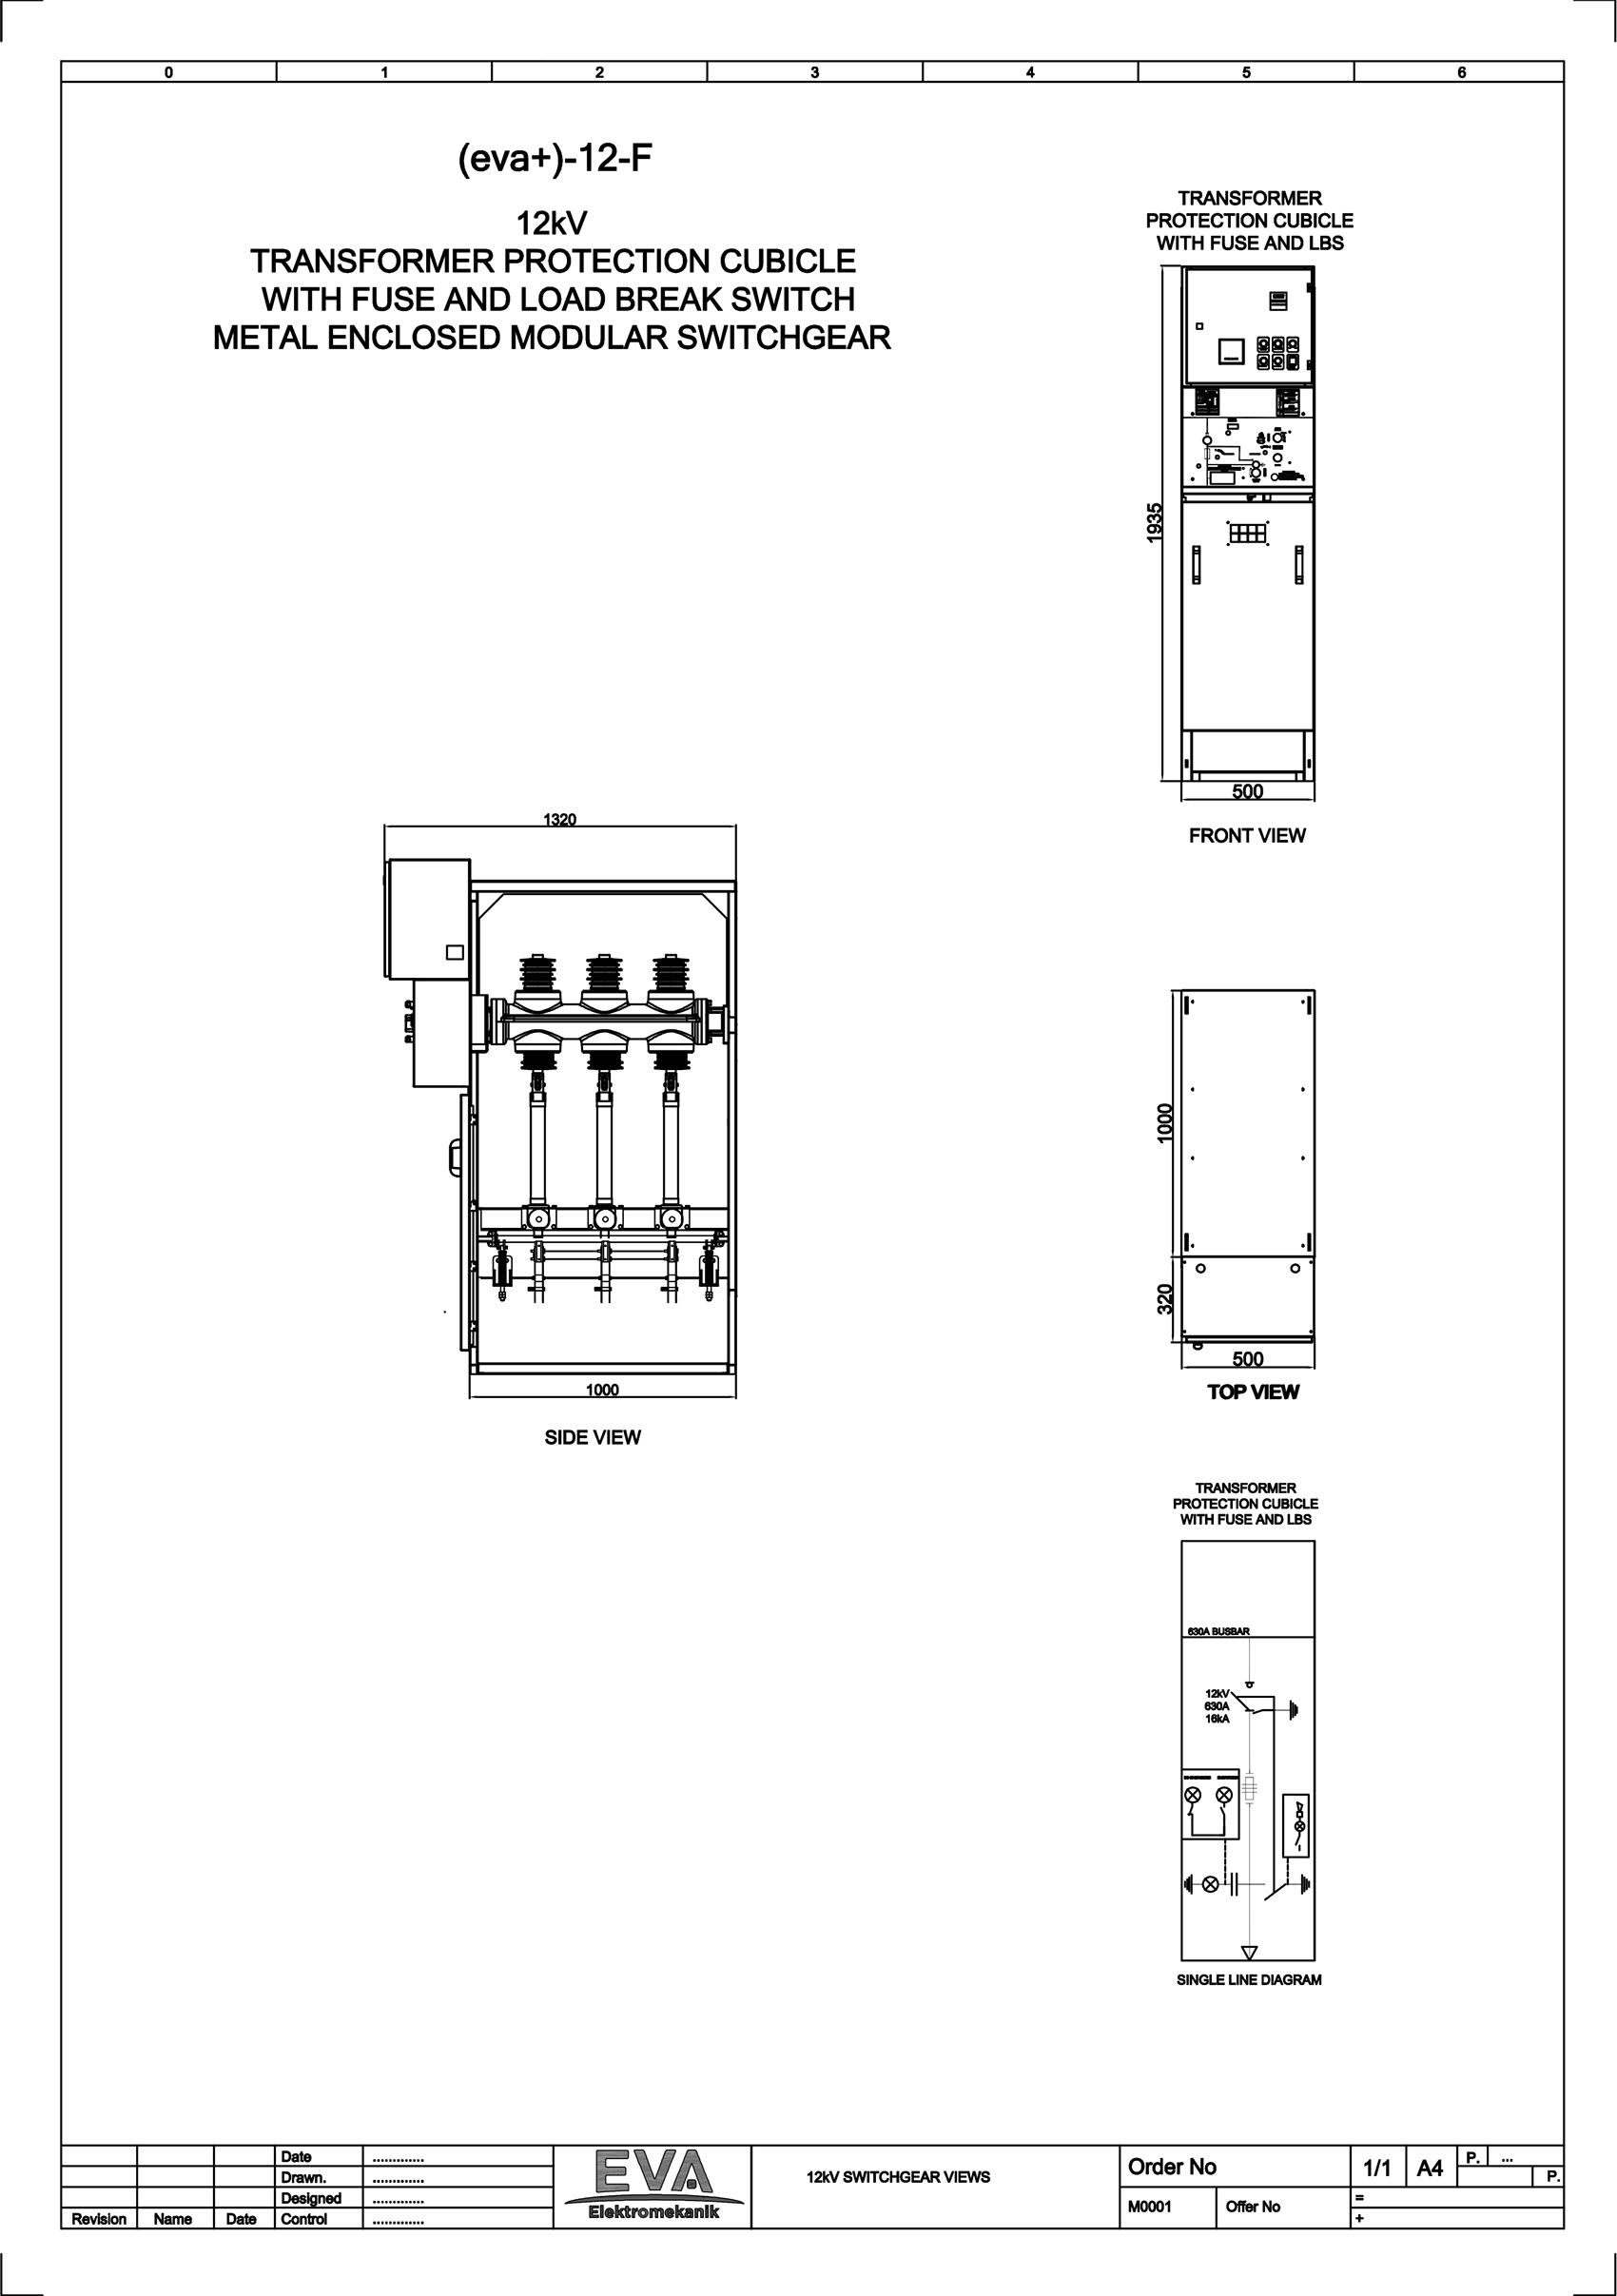 Transformer Protection Cubicle with Fuse and Load Break Switch (LBS)